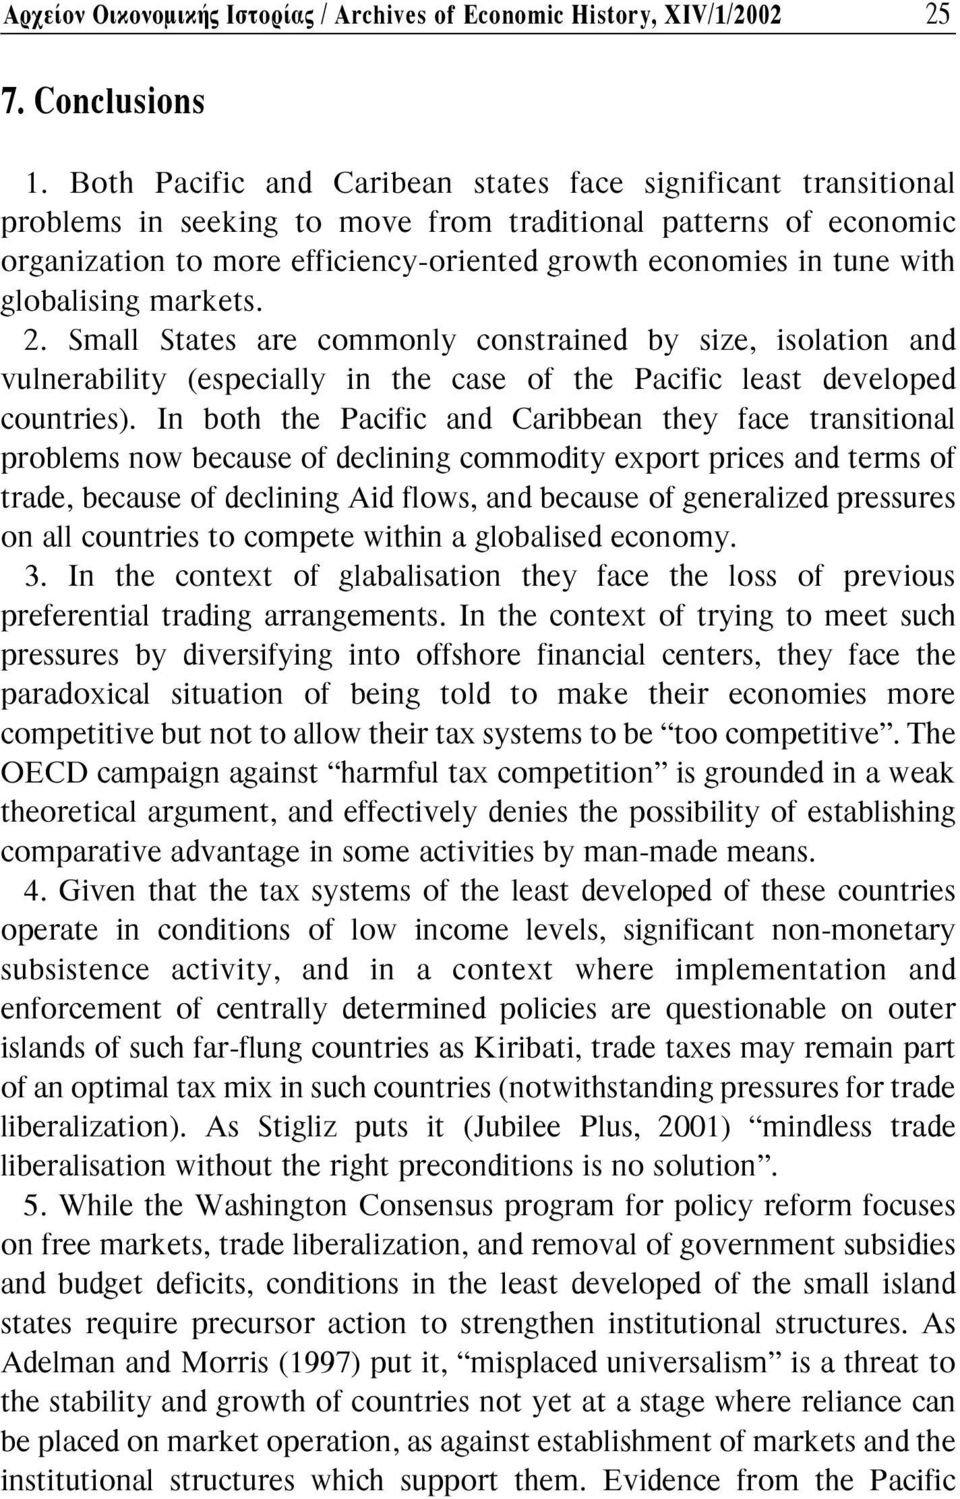 globalising markets. 2. Small States are commonly constrained by size, isolation and vulnerability (especially in the case of the Pacific least developed countries).